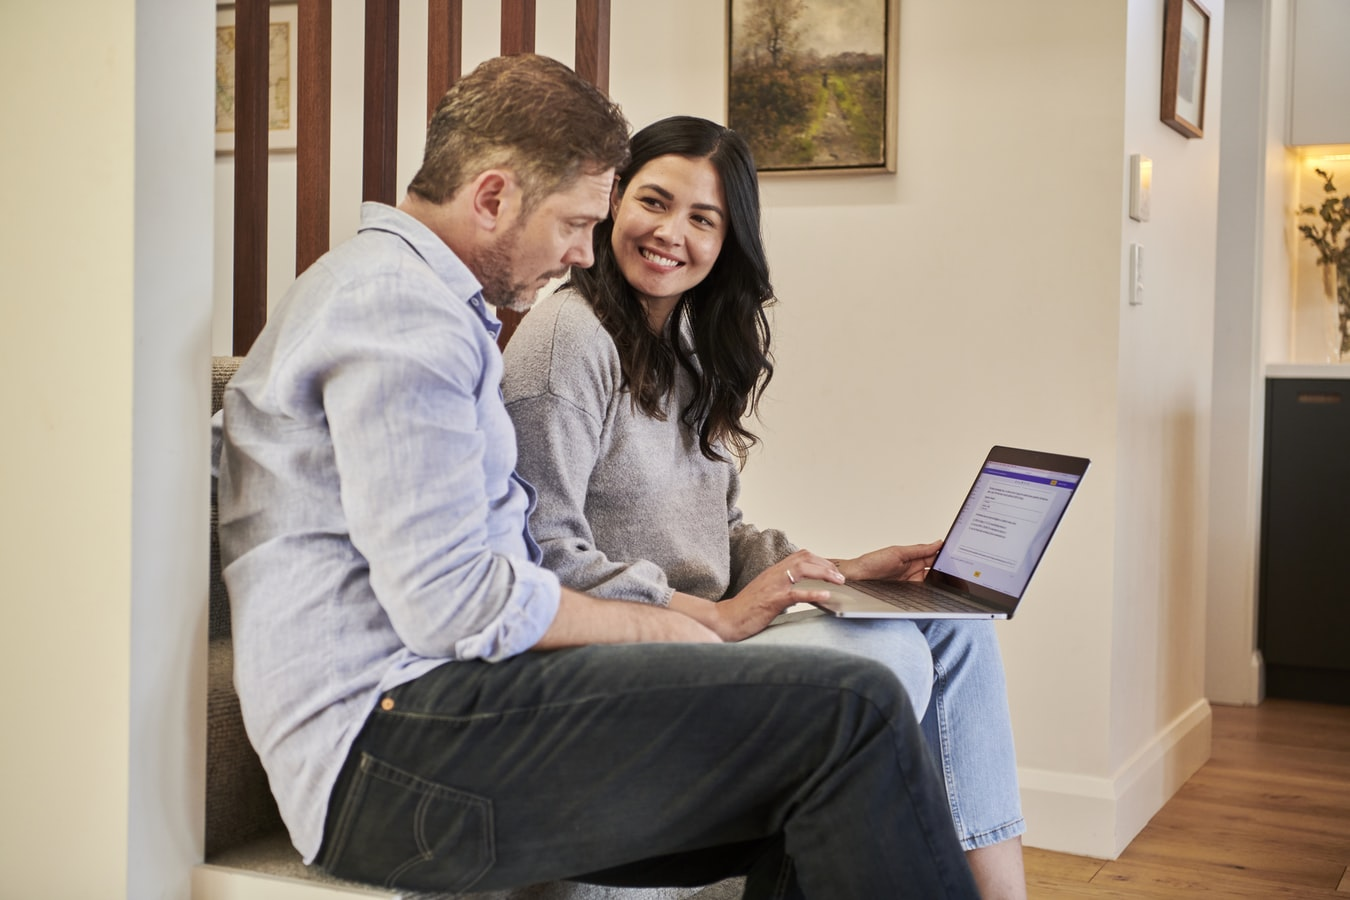 Couple sitting together with laptop